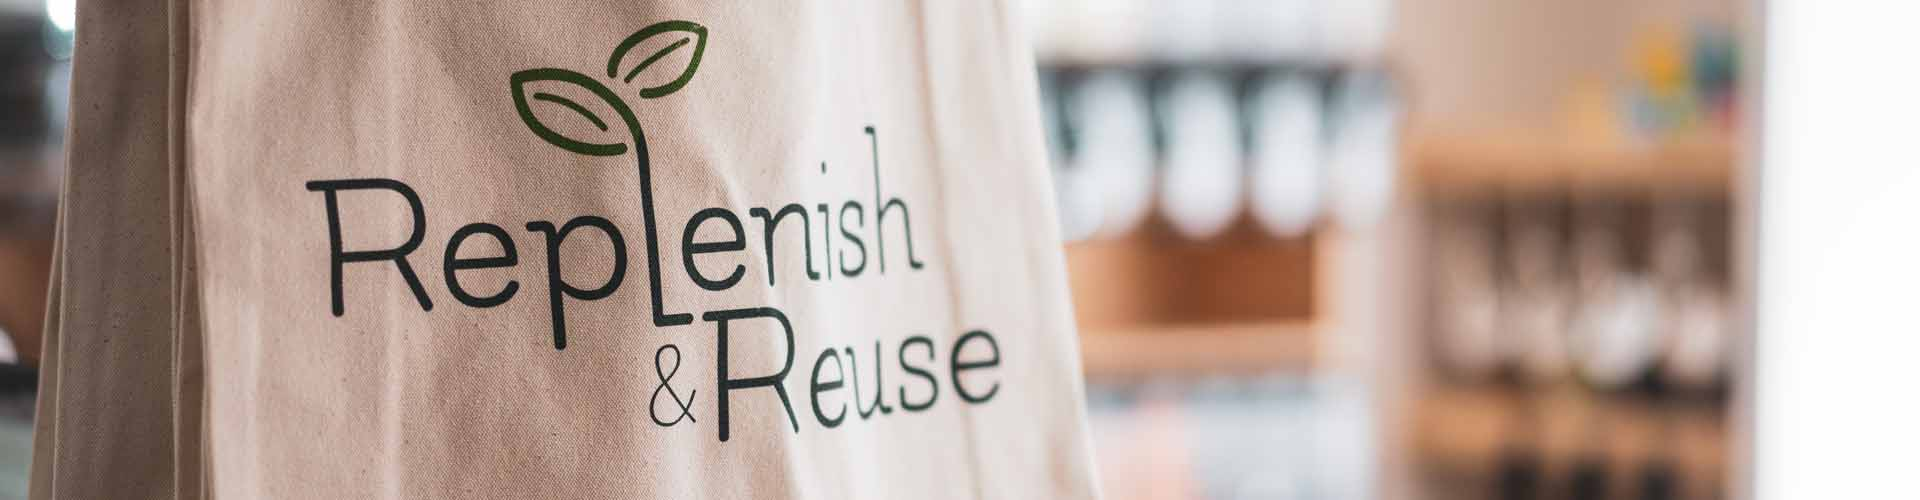 Replenish and Reuse - Zero Waste Shop Hertfordshire